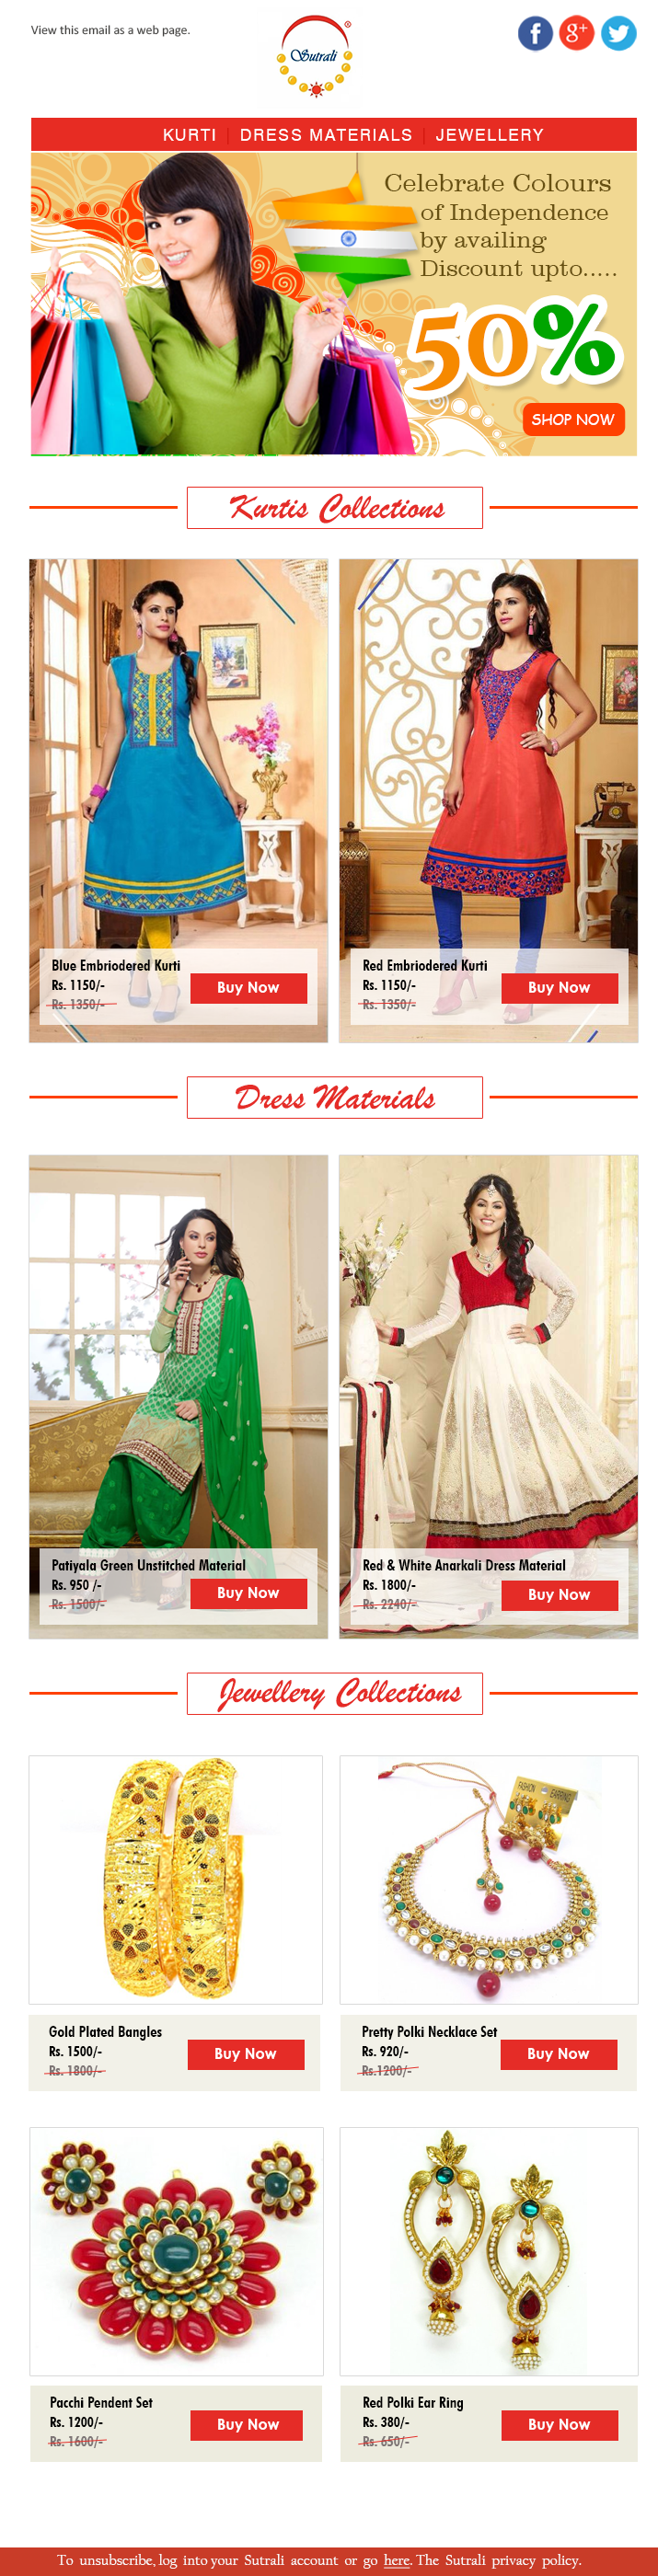 Emailer design for Sutrali Fashions